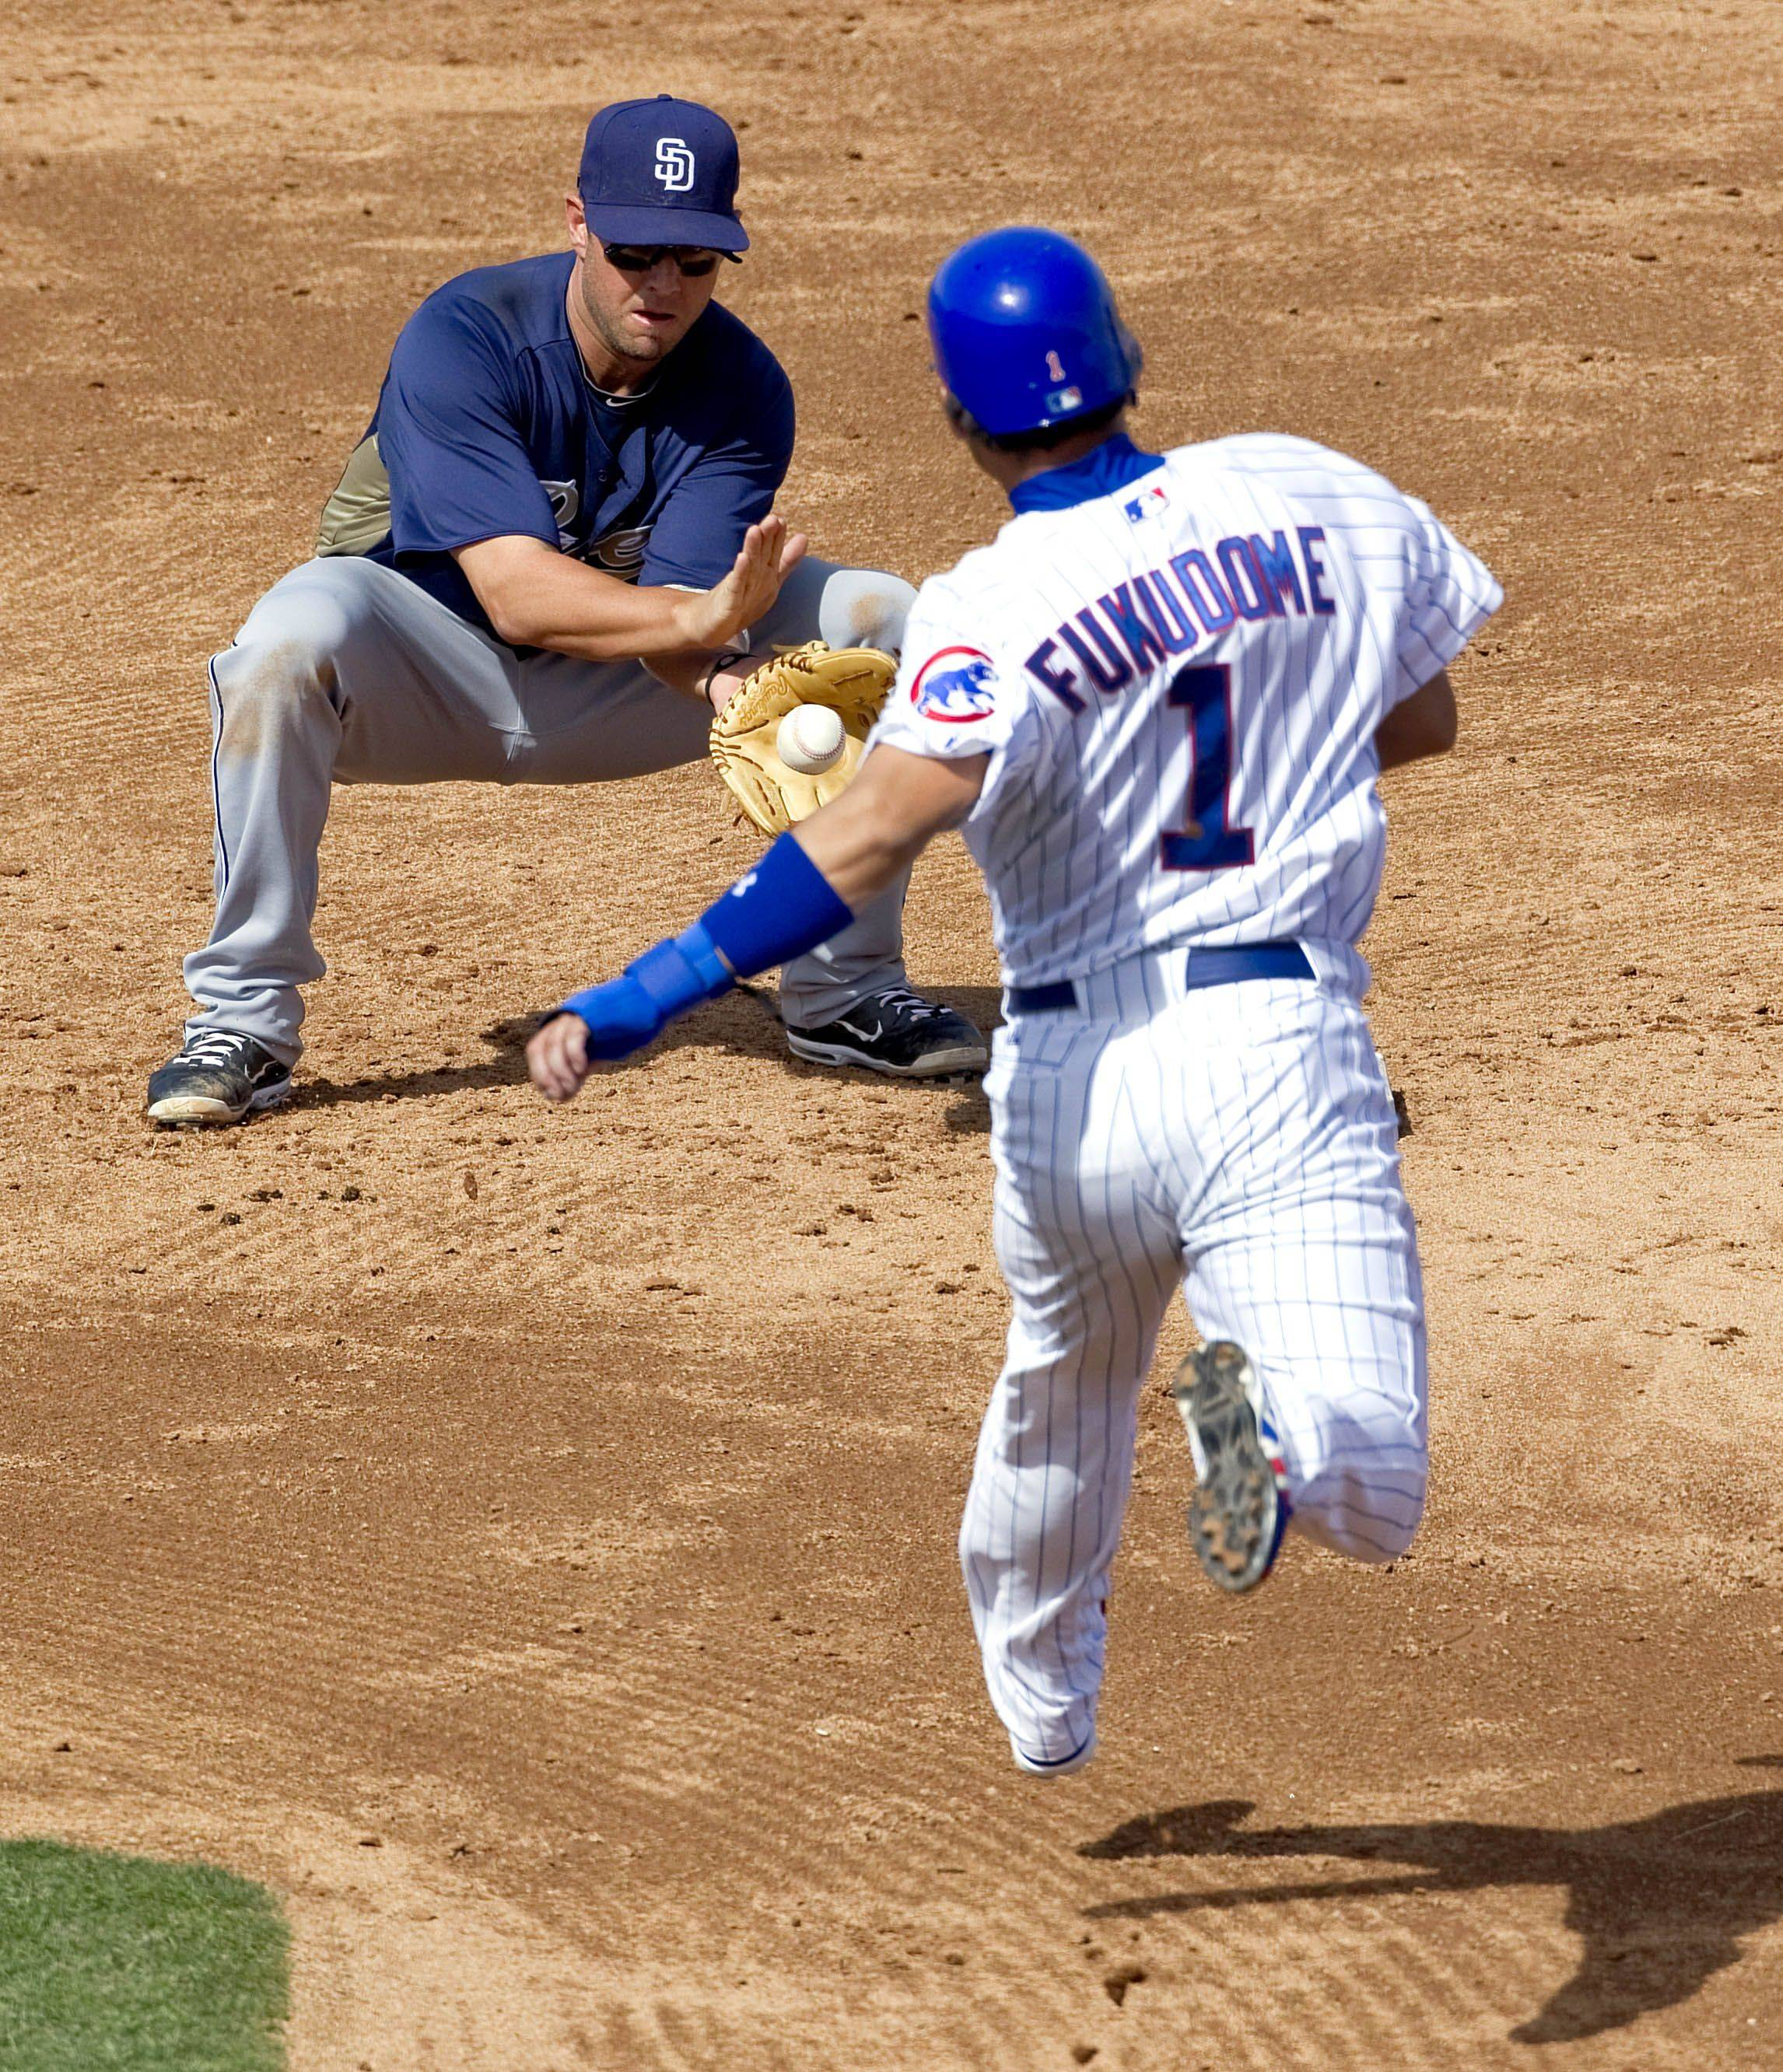 Kosuke Fukudome comes up short in this stolen-base attempt last Saturday against the San Diego Padres. Fukudome is in the last year of a four-year contract with the Cubs.